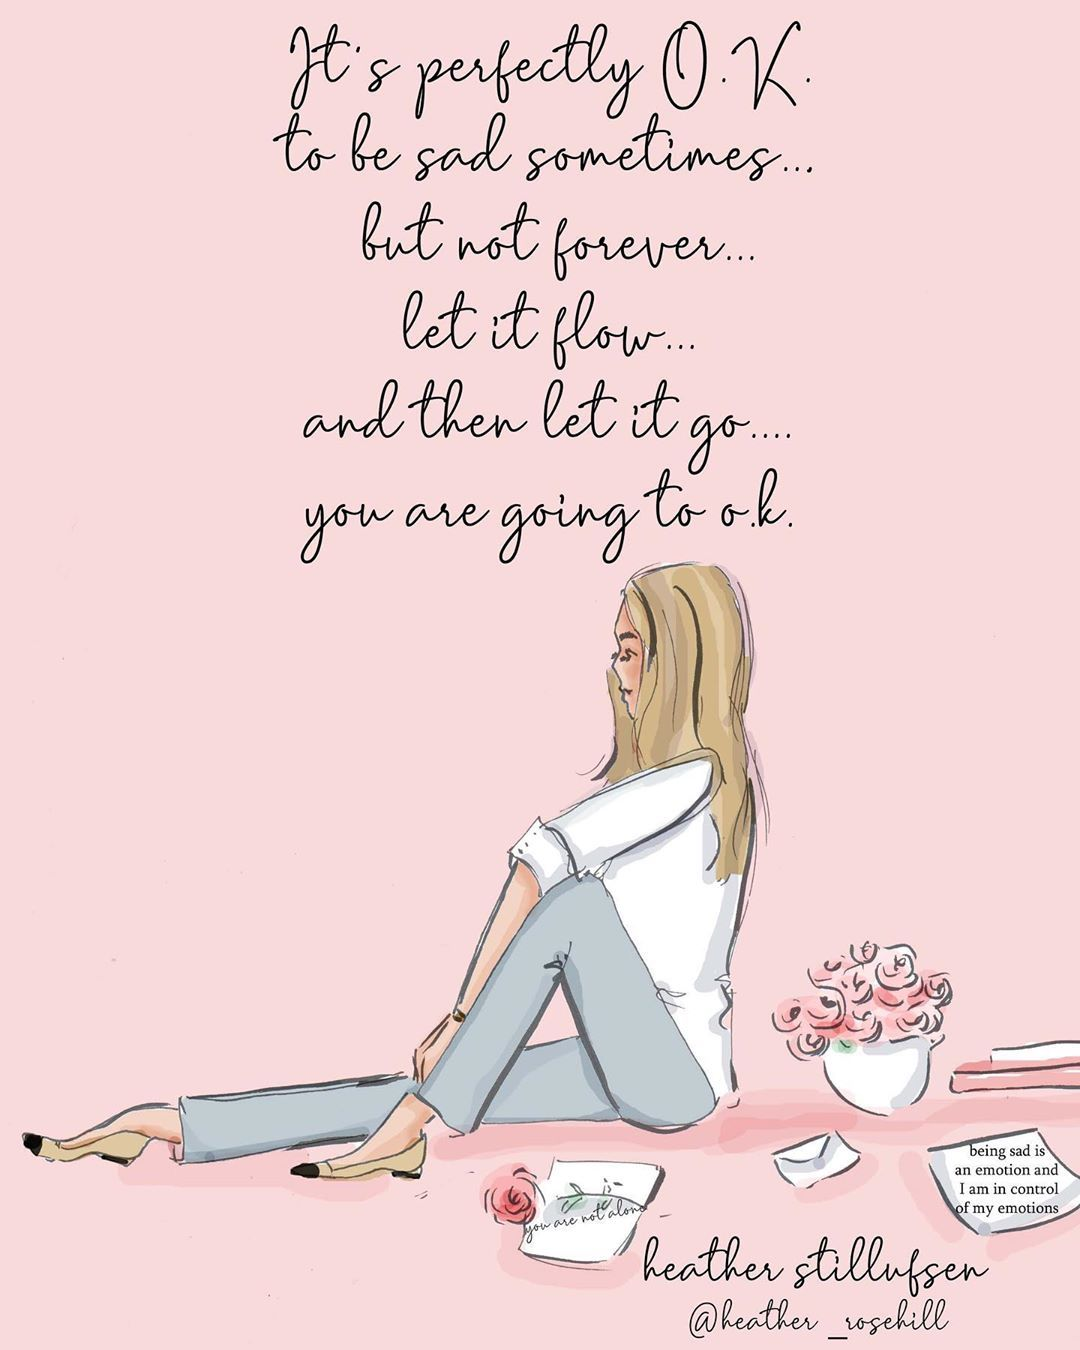 """Sad Stress Quotes Heather   Stillufsen on Instagram: """"It's OK to be sad sometimes... but not forever   let it go and let your emotions flow but then know you are resilient, pick yourself up and…"""""""